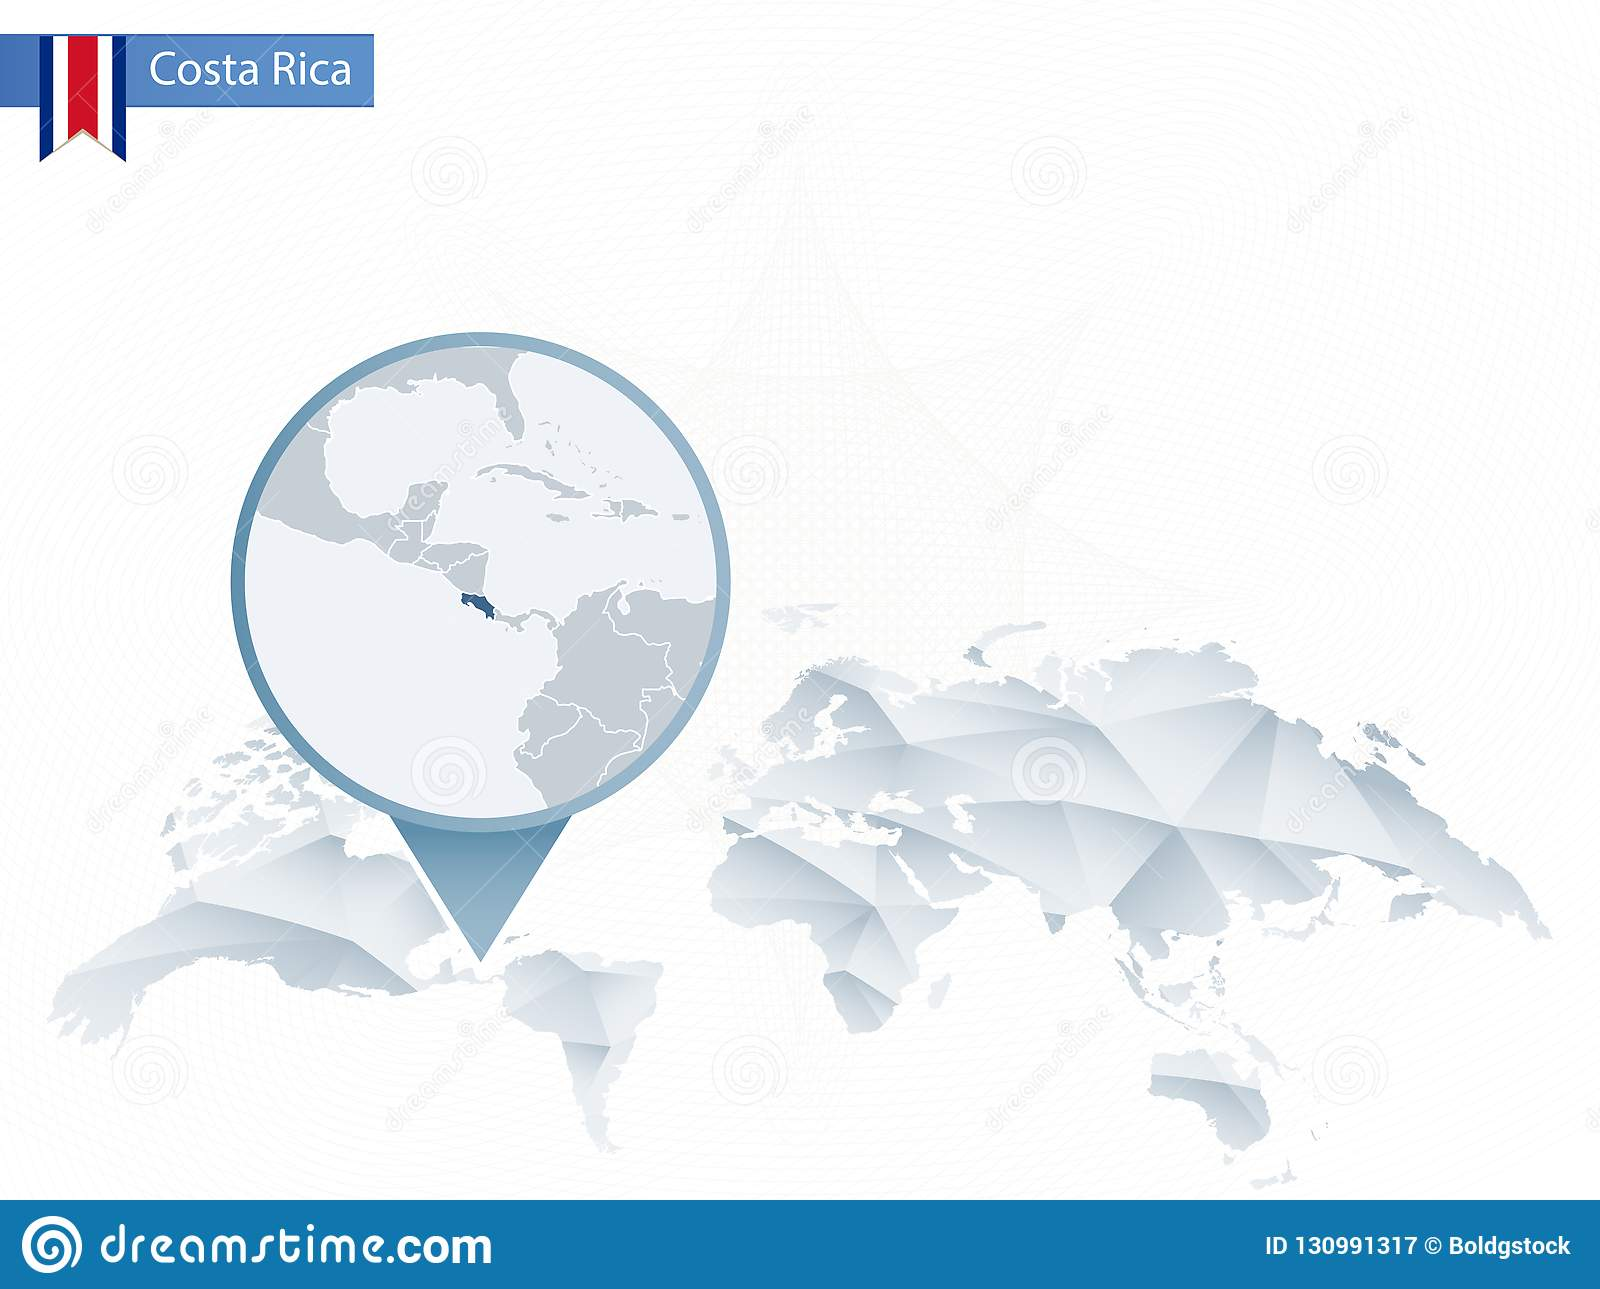 Picture of: Abstract Rounded World Map With Pinned Detailed Costa Rica Map Stock Vector Illustration Of America Capital 130991317